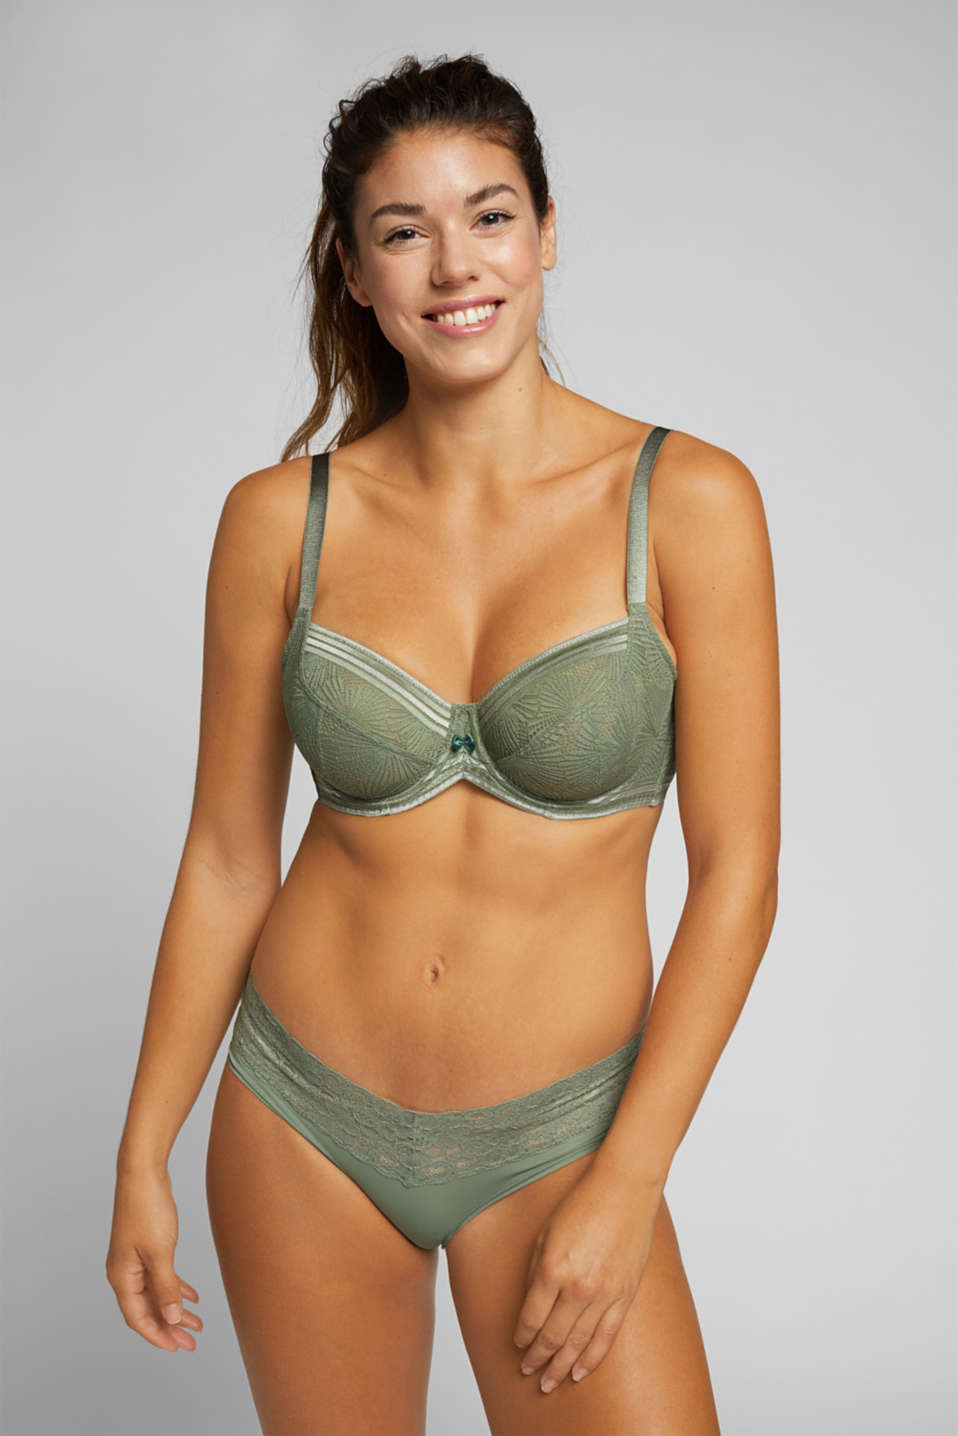 Esprit - Recycled: Lace bra for larger cup sizes